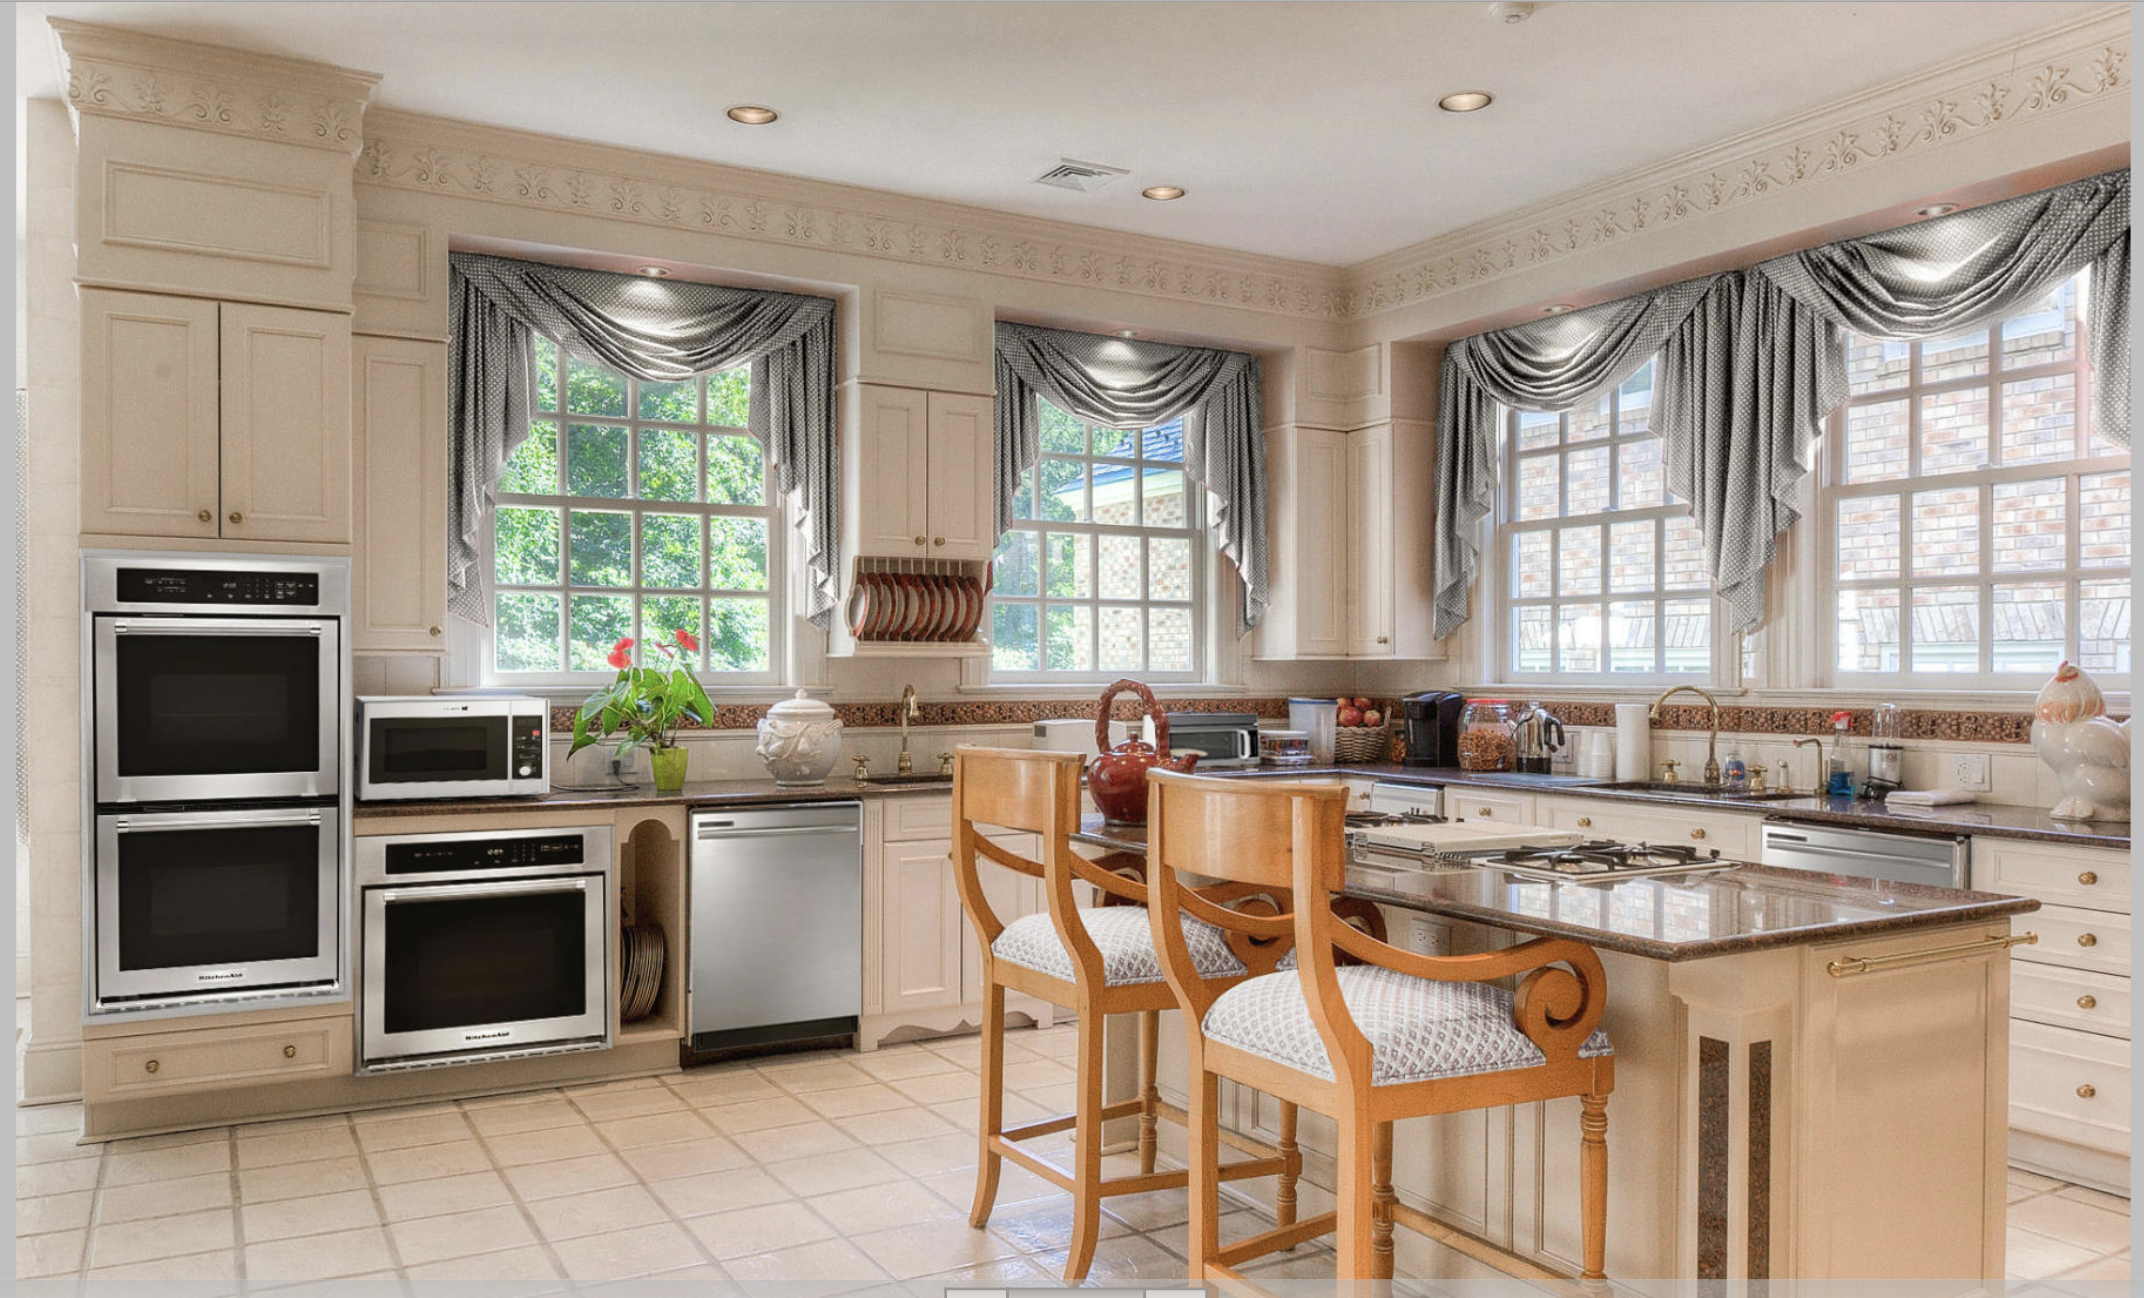 It's easy to see why the current listing doesn't show the kitchen